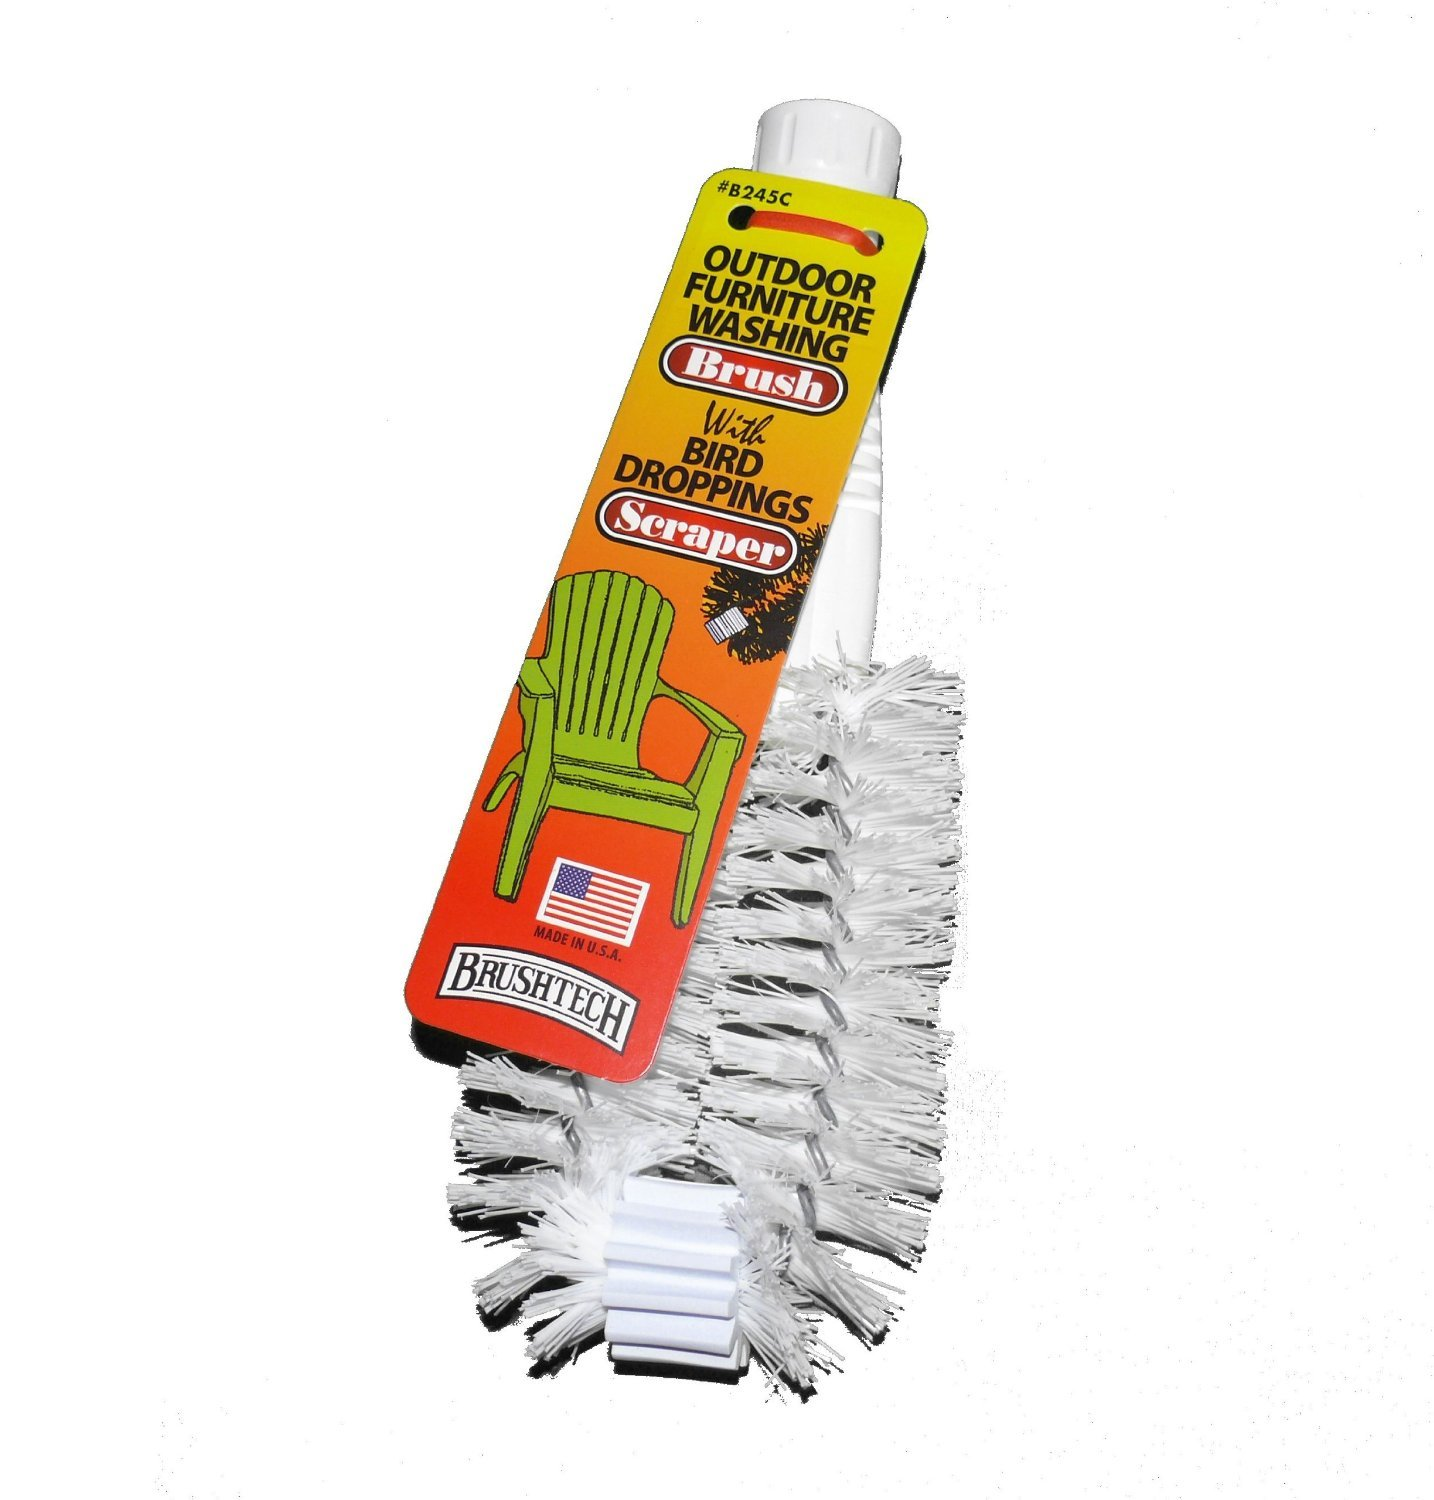 Brushtech Outdoor Washing Brush with Bird Droppings Scraper